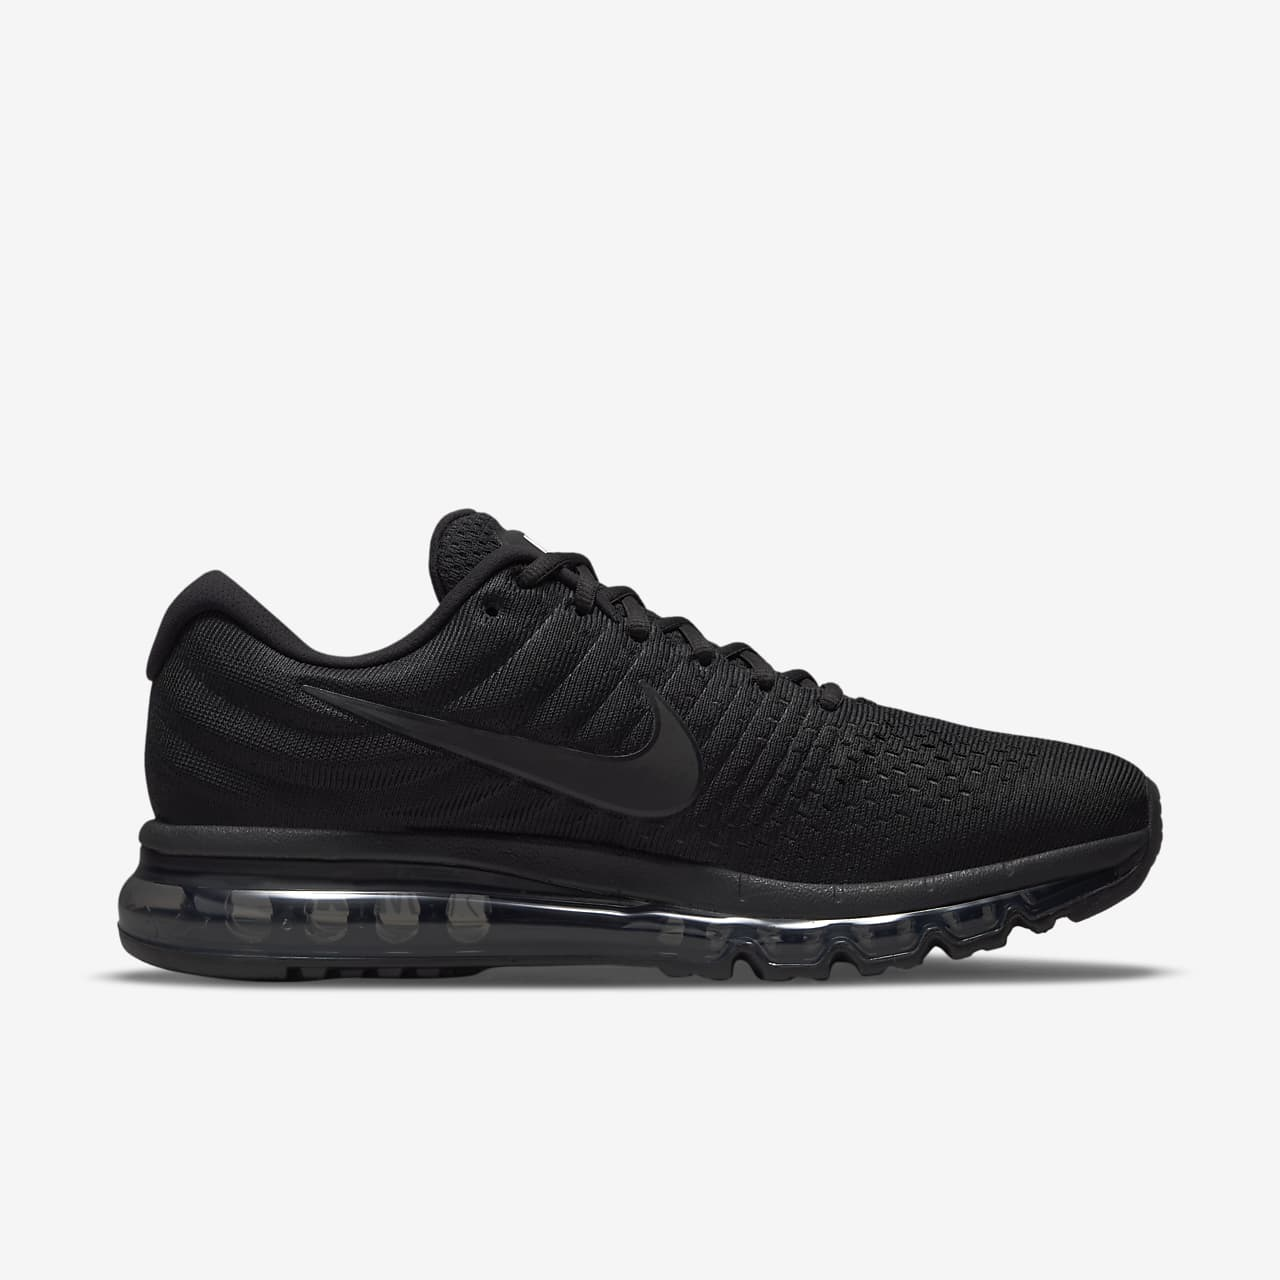 nike air max 2017 id red nz